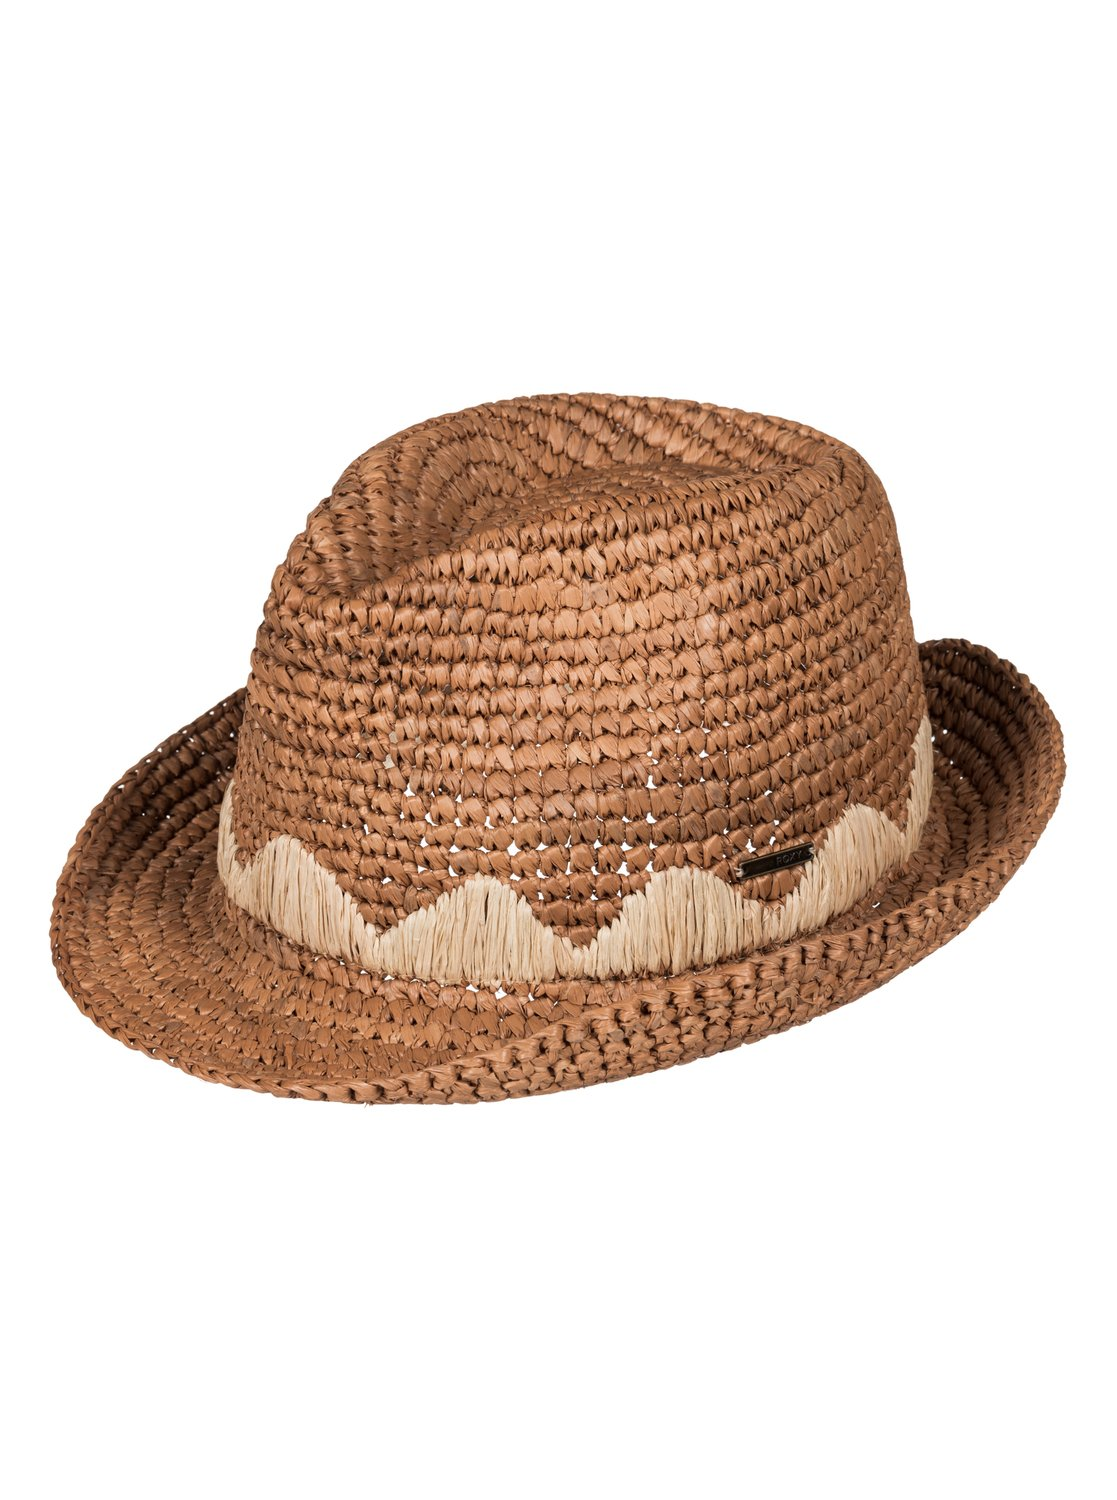 Witching - Straw Fedora<br>